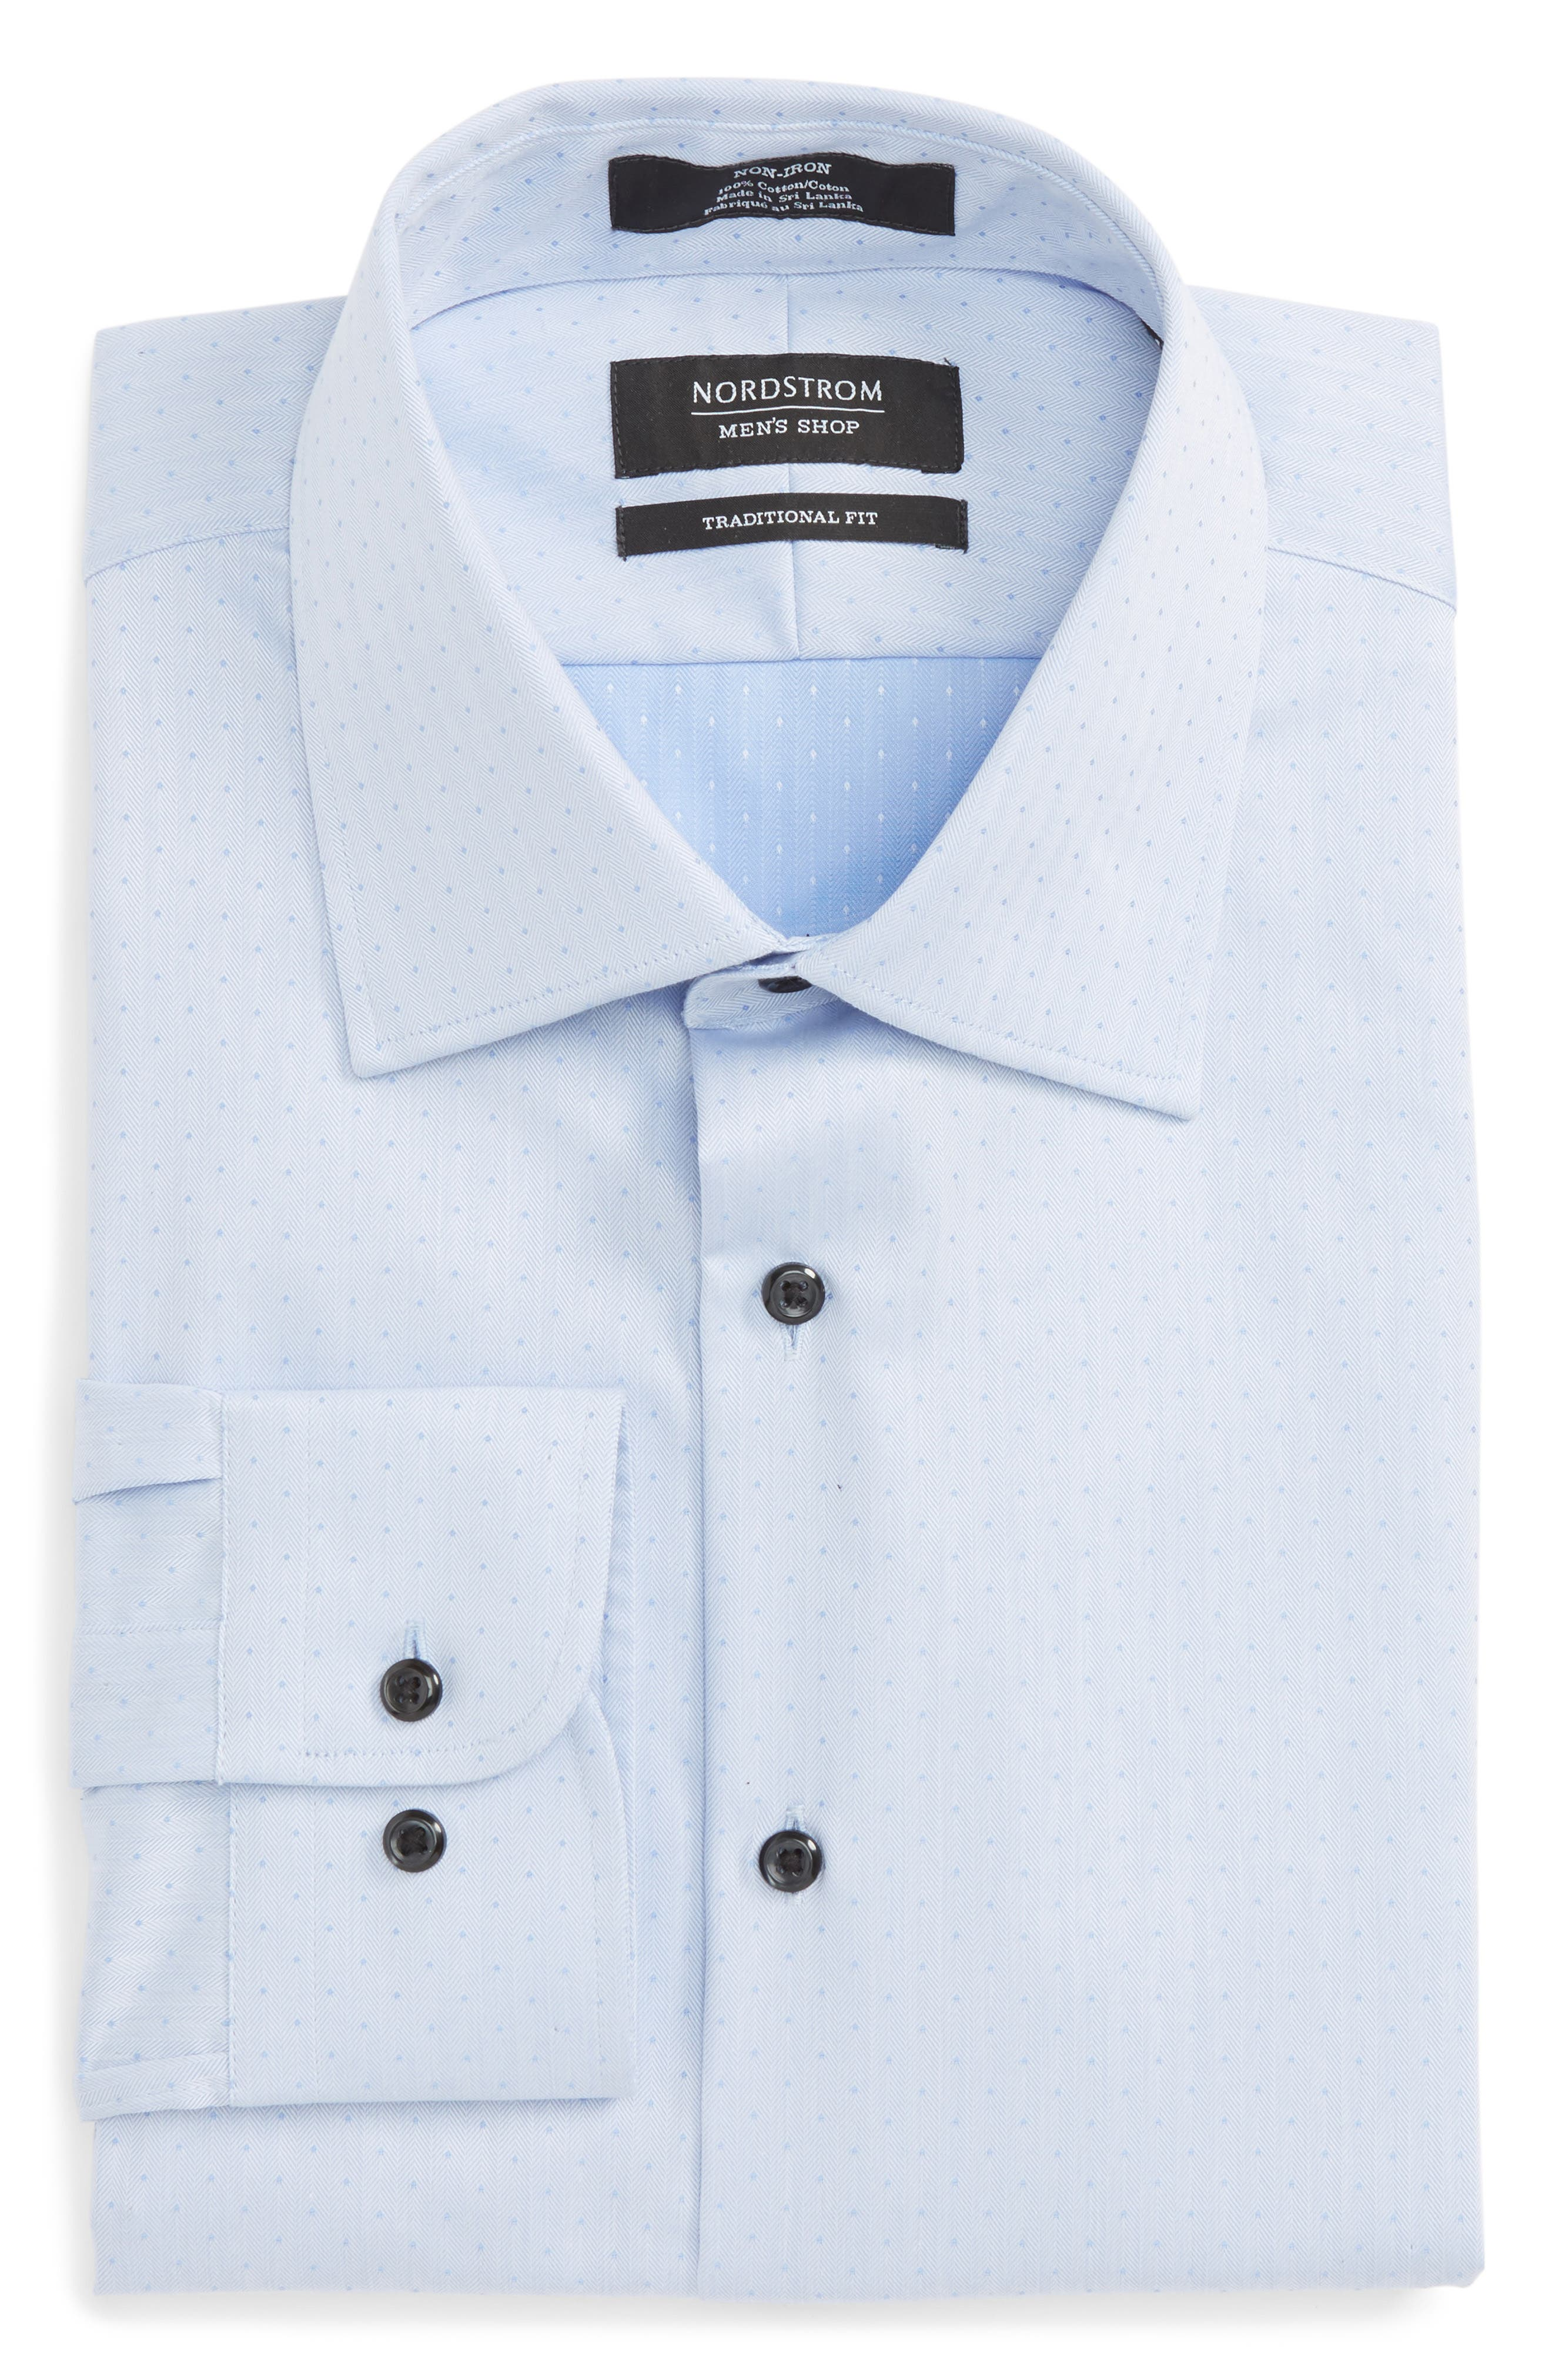 Main Image - Nordstrom Men's Shop Traditional Fit Non-Iron Dress Shirt